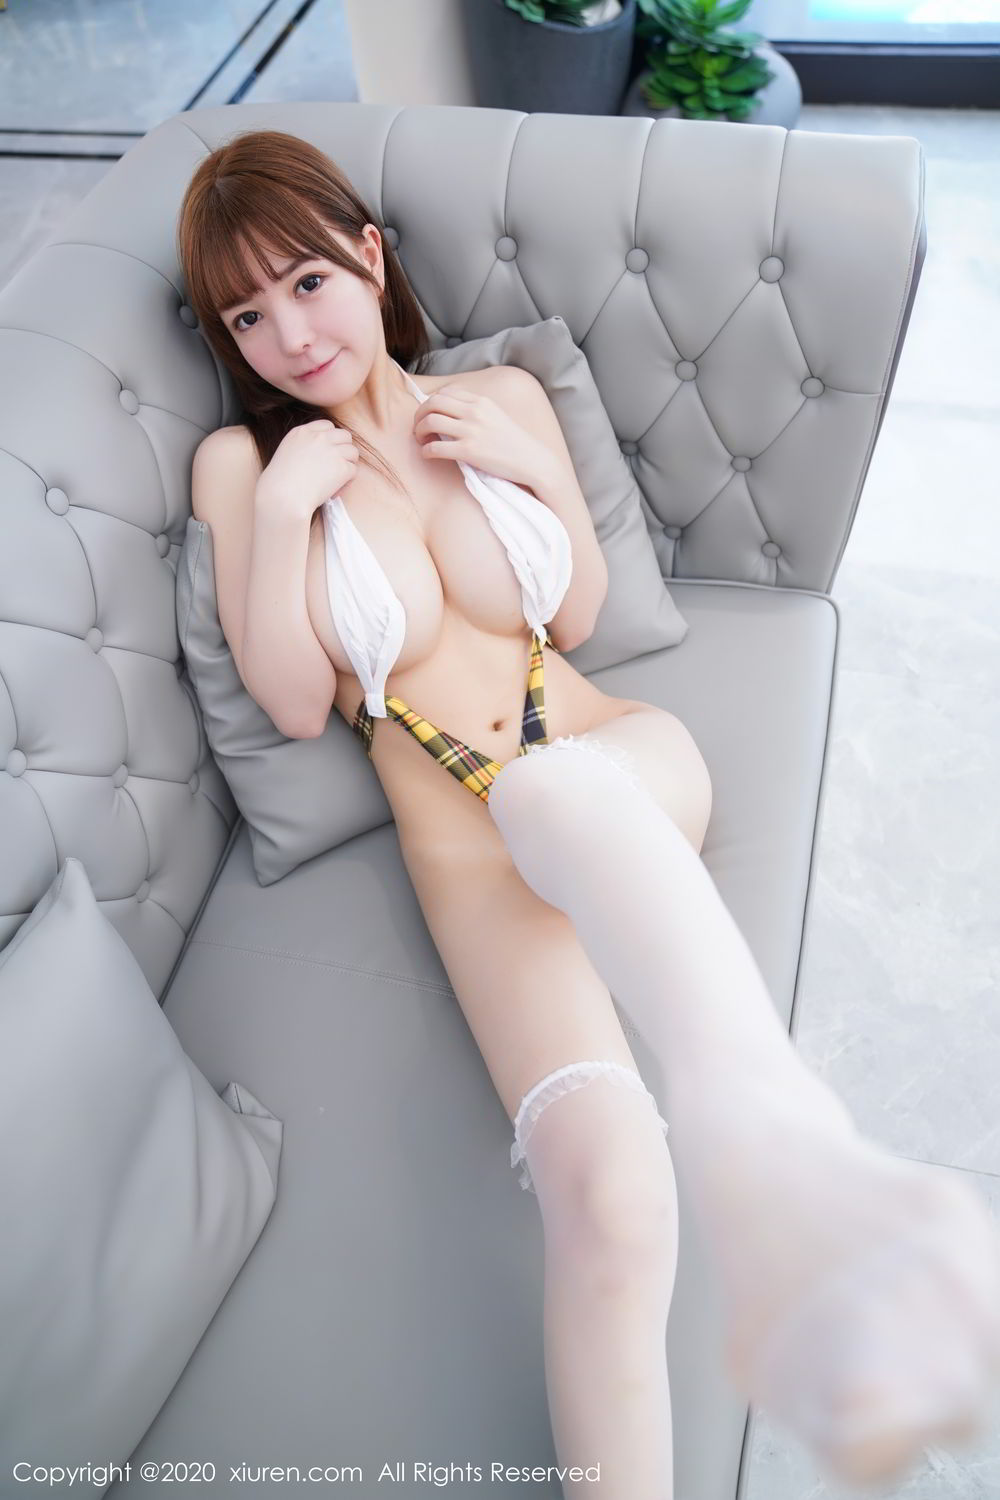 [XiuRen] Vol.2115 Uu Jiang 23P, Baby Face Big Boobs, Cute, UU Jiang, Xiuren